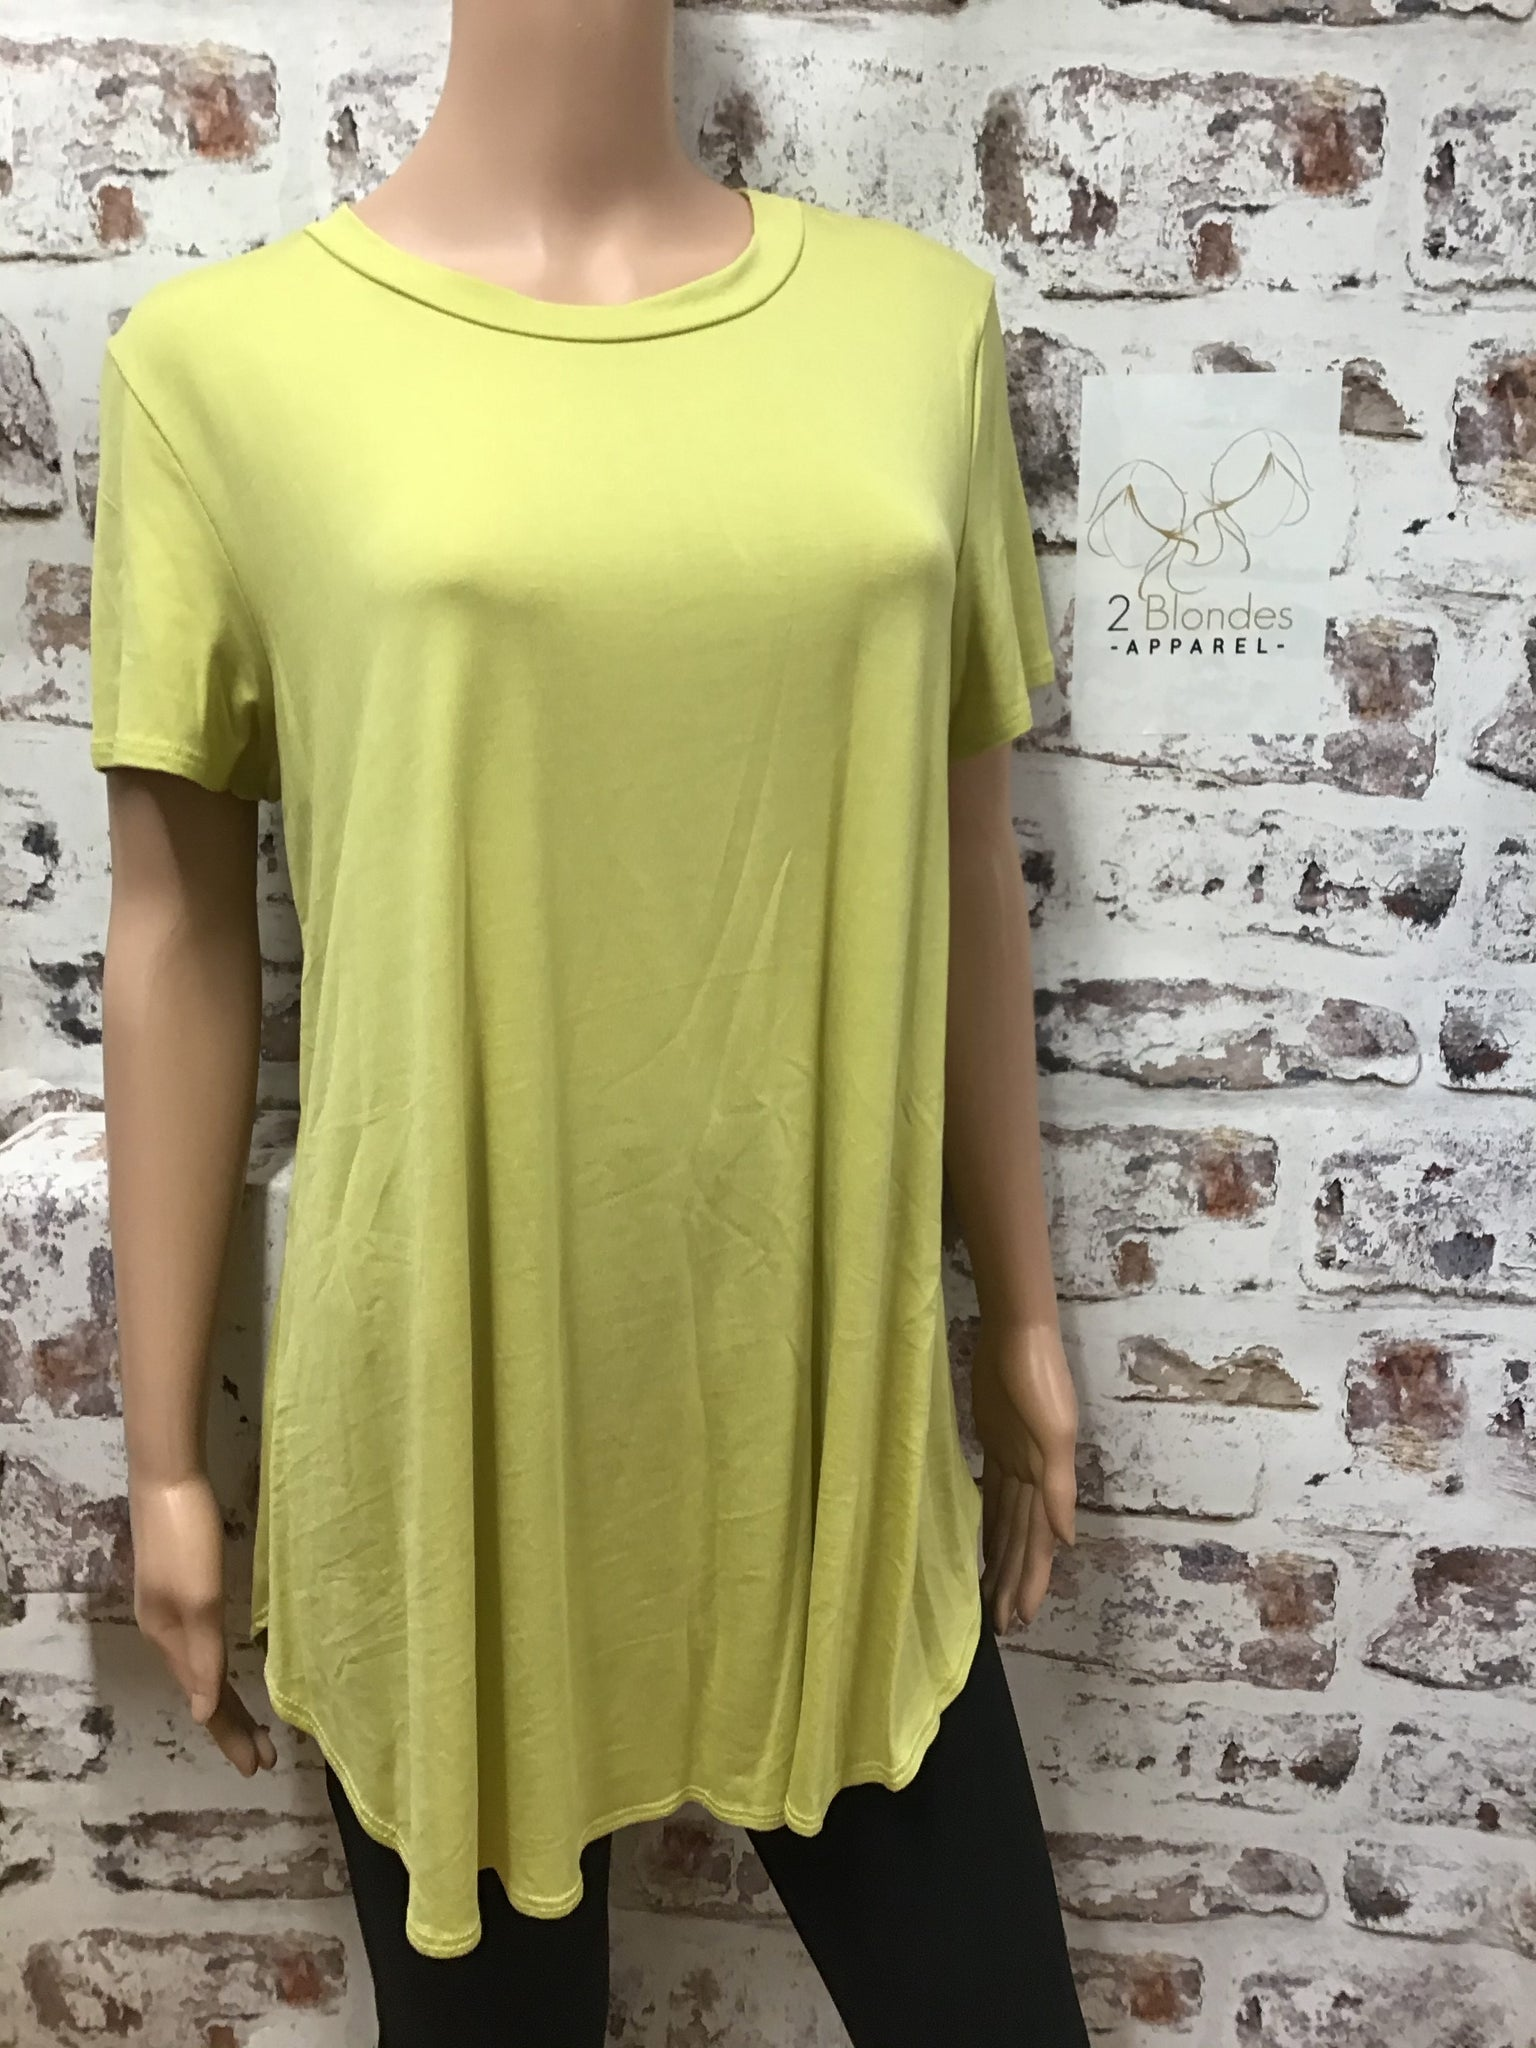 Plus Size Classic Yellow Top